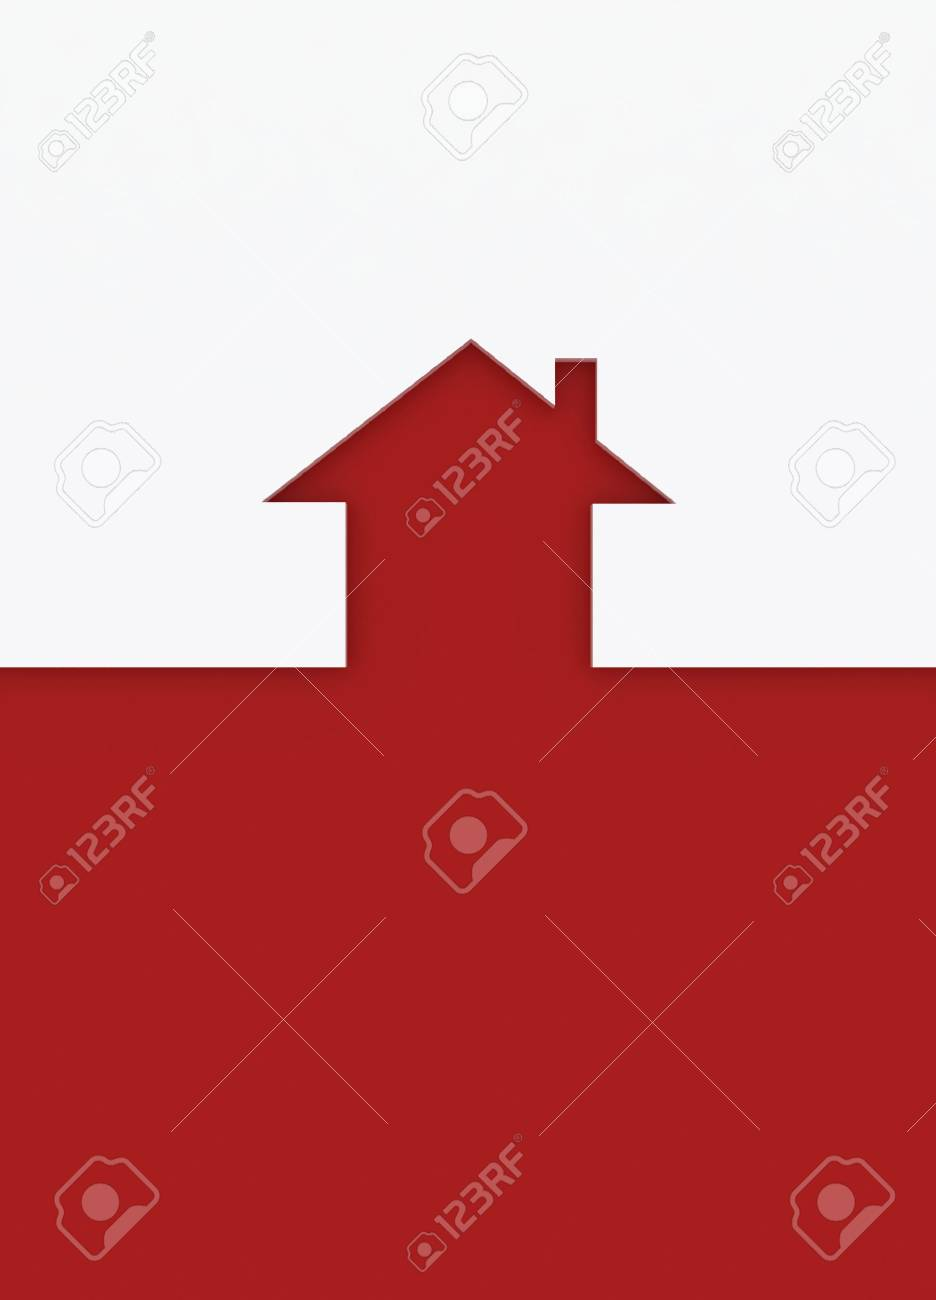 Fine 3d image metaphor of Red house sign Stock Photo - 6301511